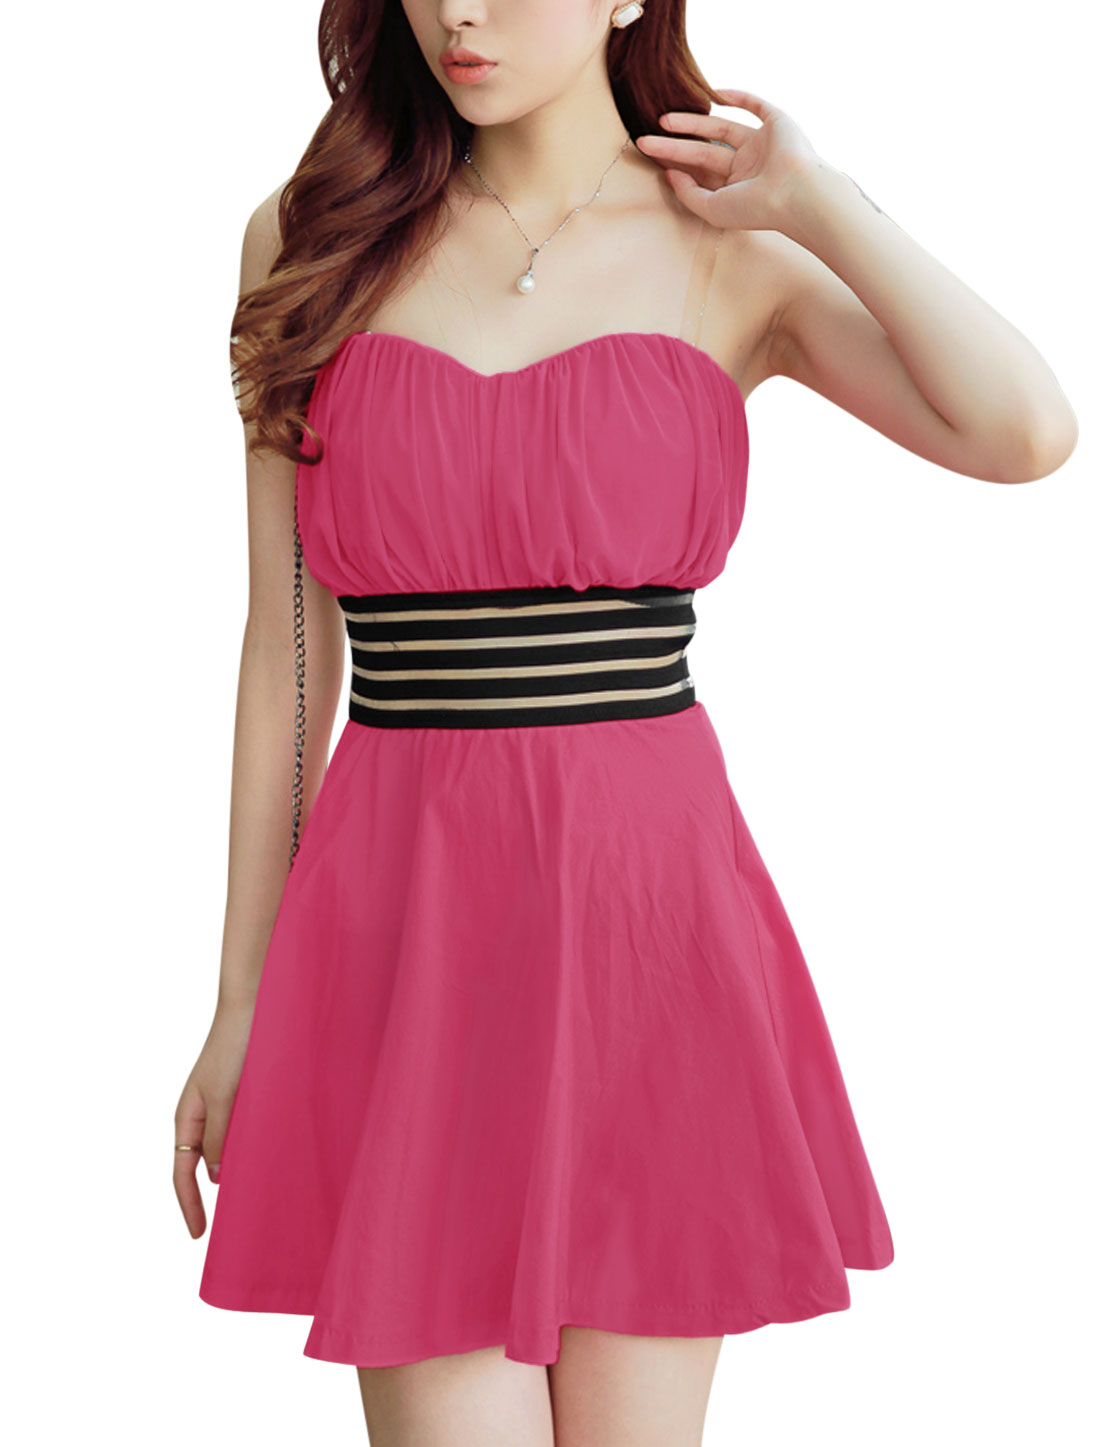 Ladies Fuchsia Slipover Sleeveless Elastic Waistband Padded Bust Corset Dress S